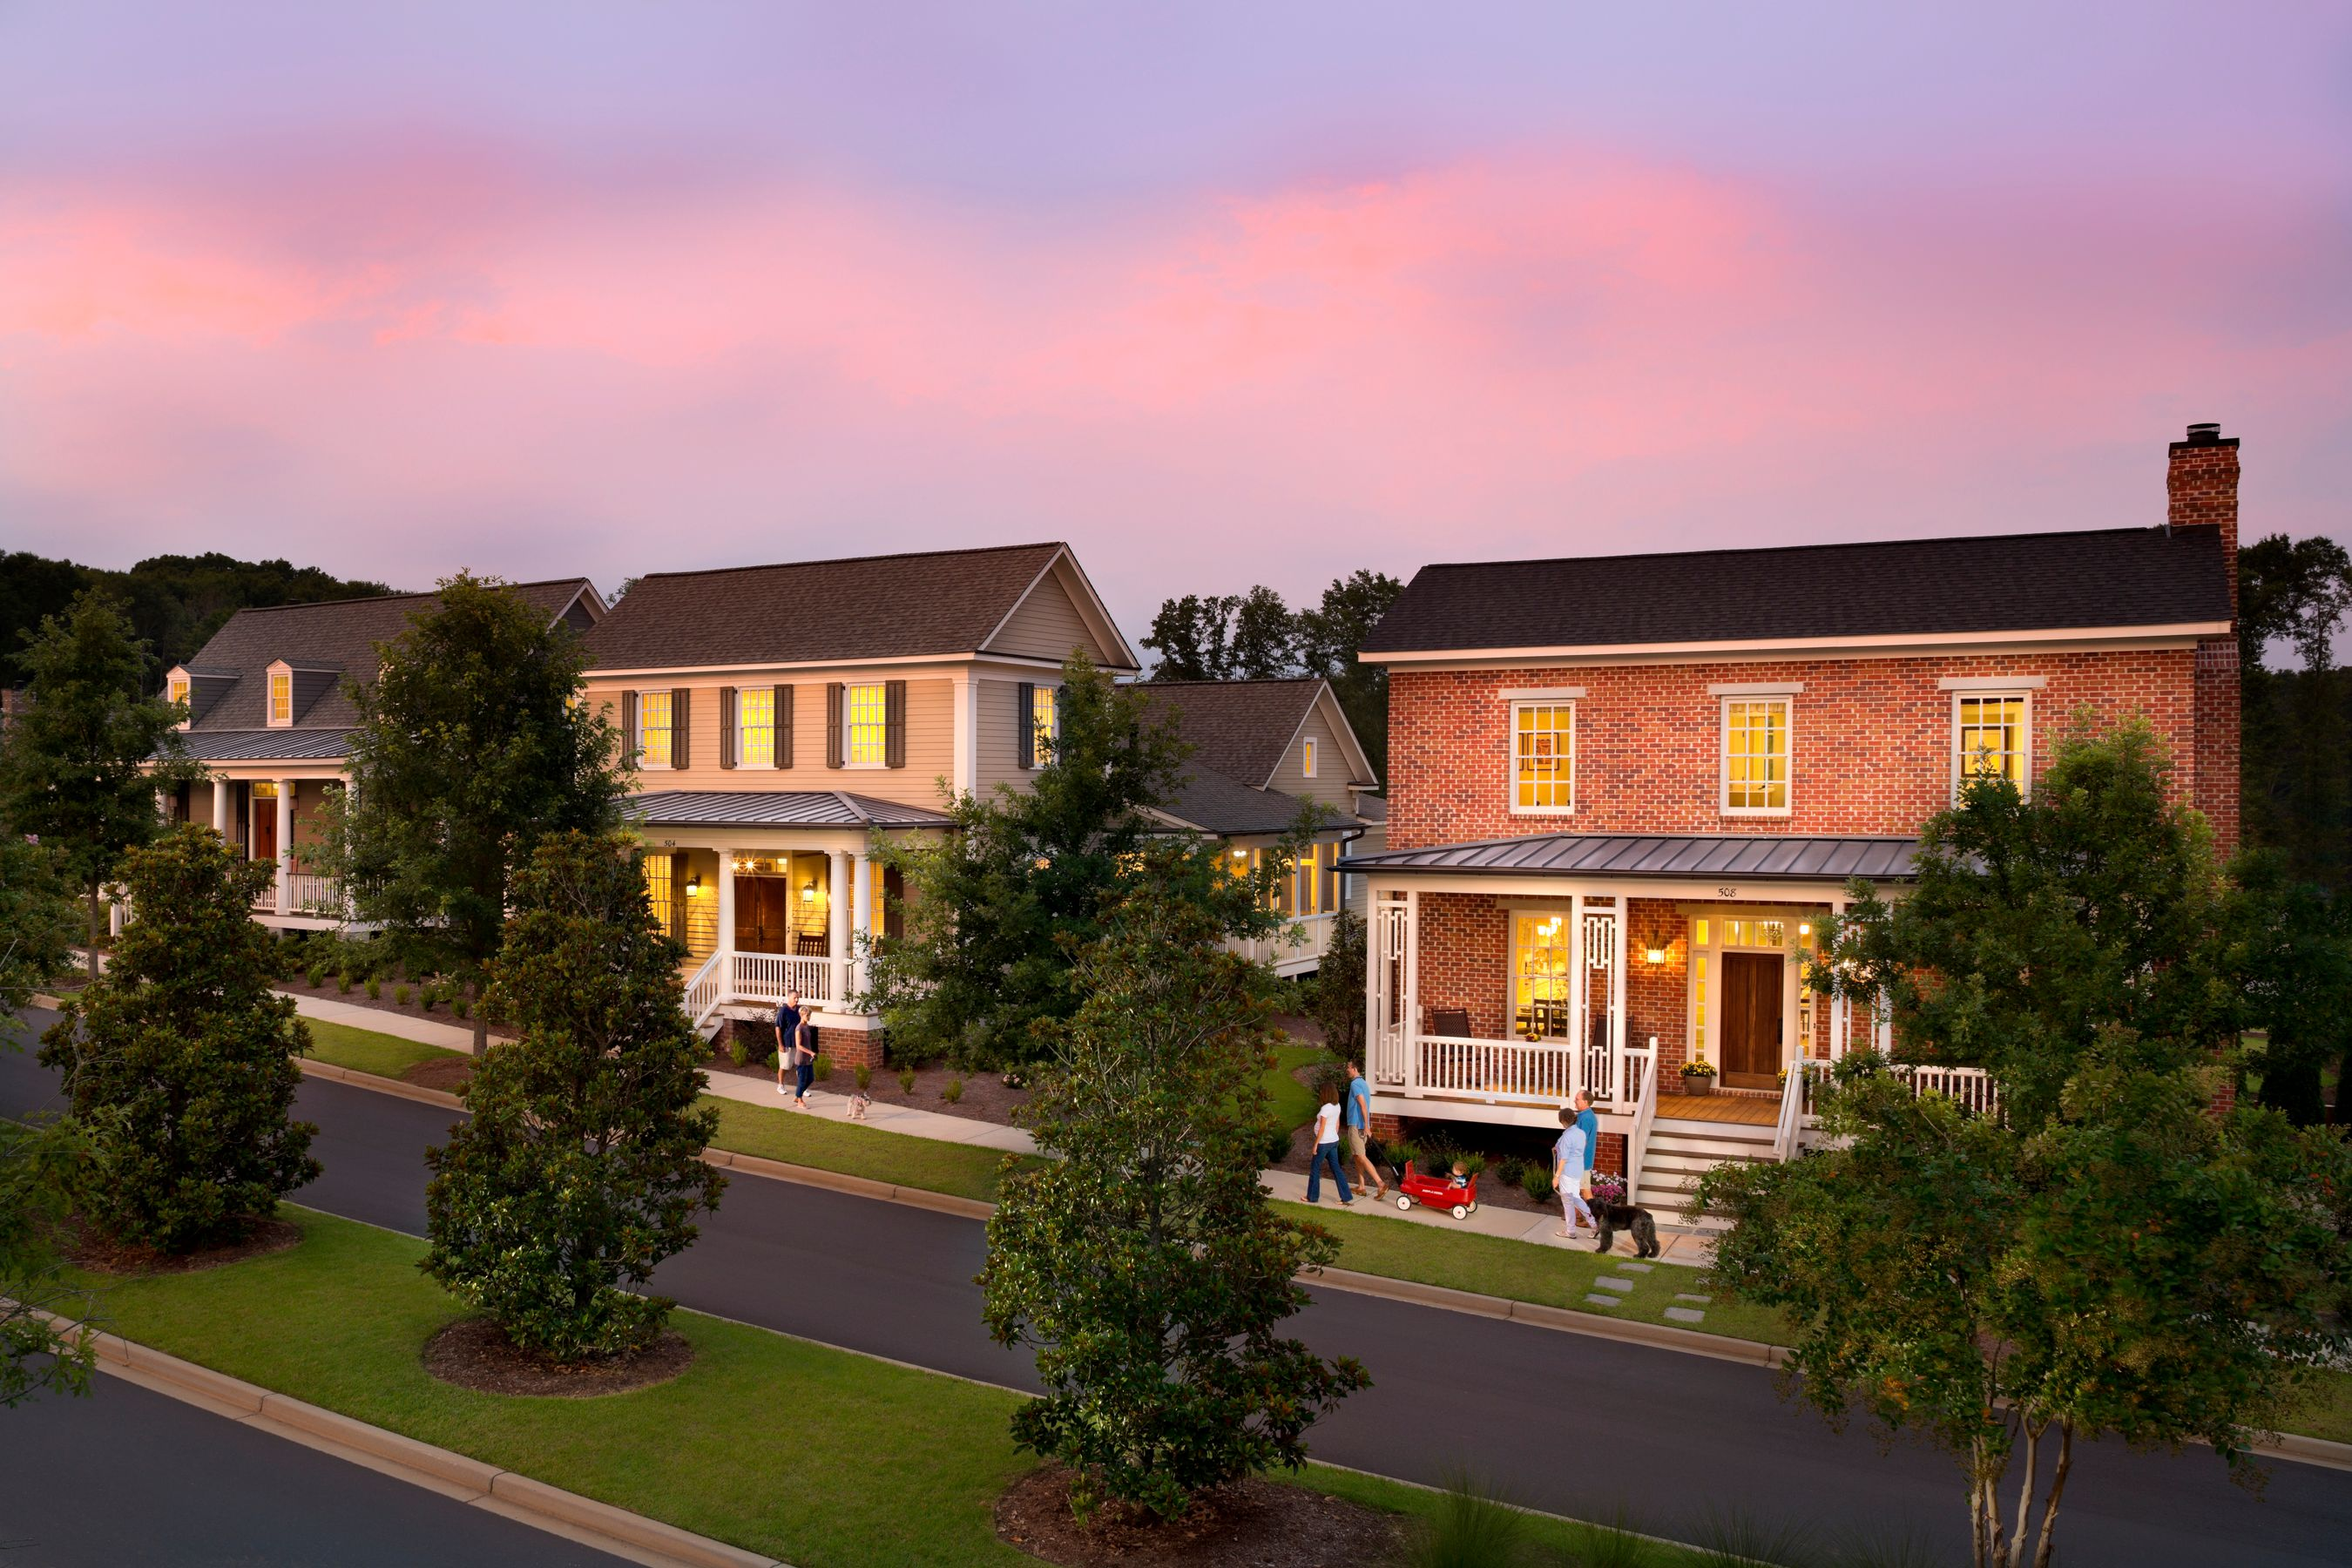 'Patrick Square' by Patrick Square LLC in Greenville-Spartanburg